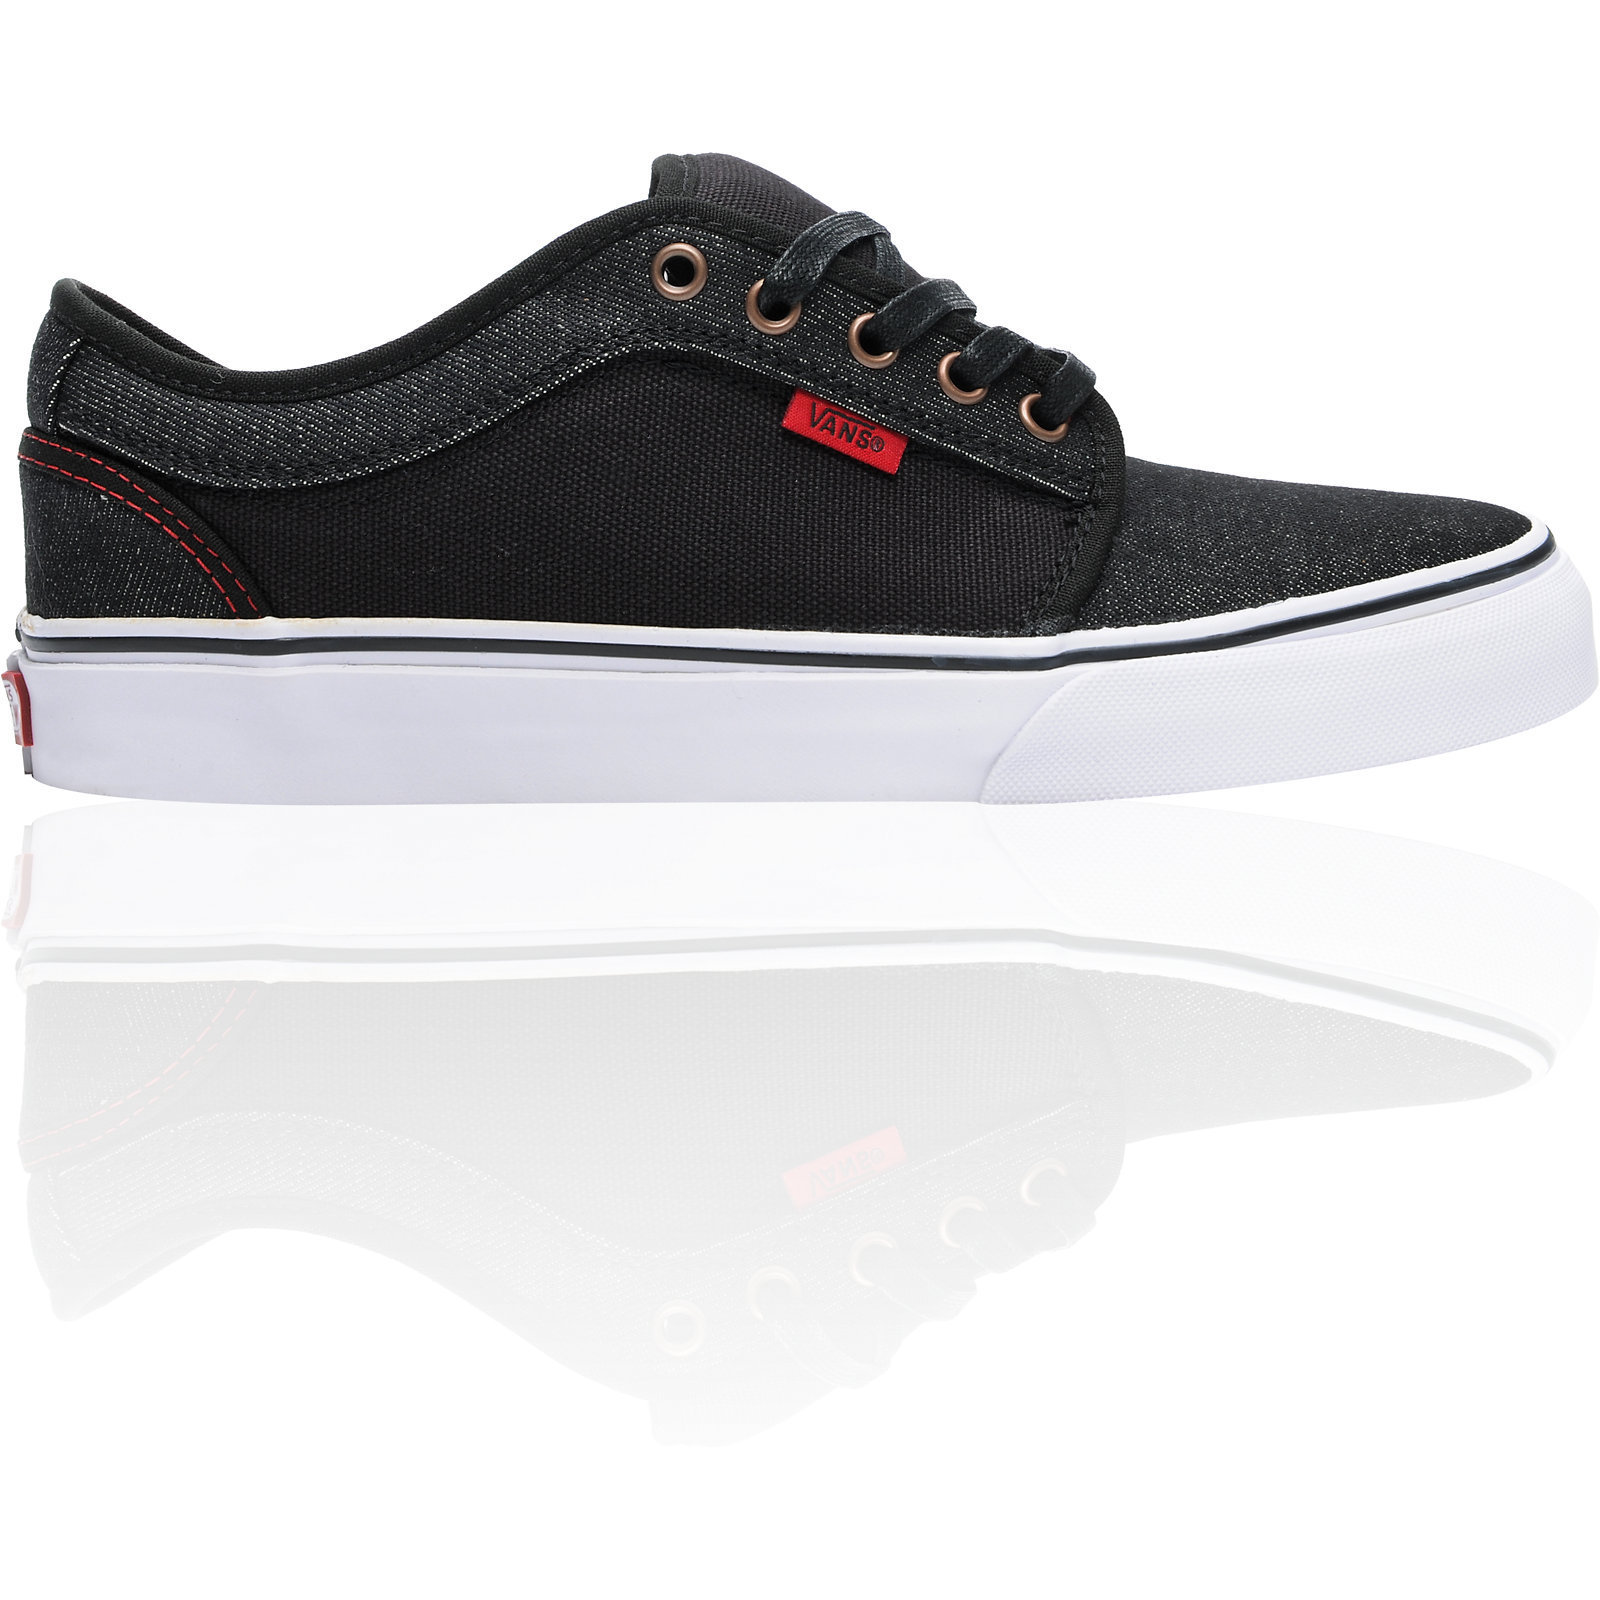 Vans Chukka Low Black Denim Red Skate Shoe